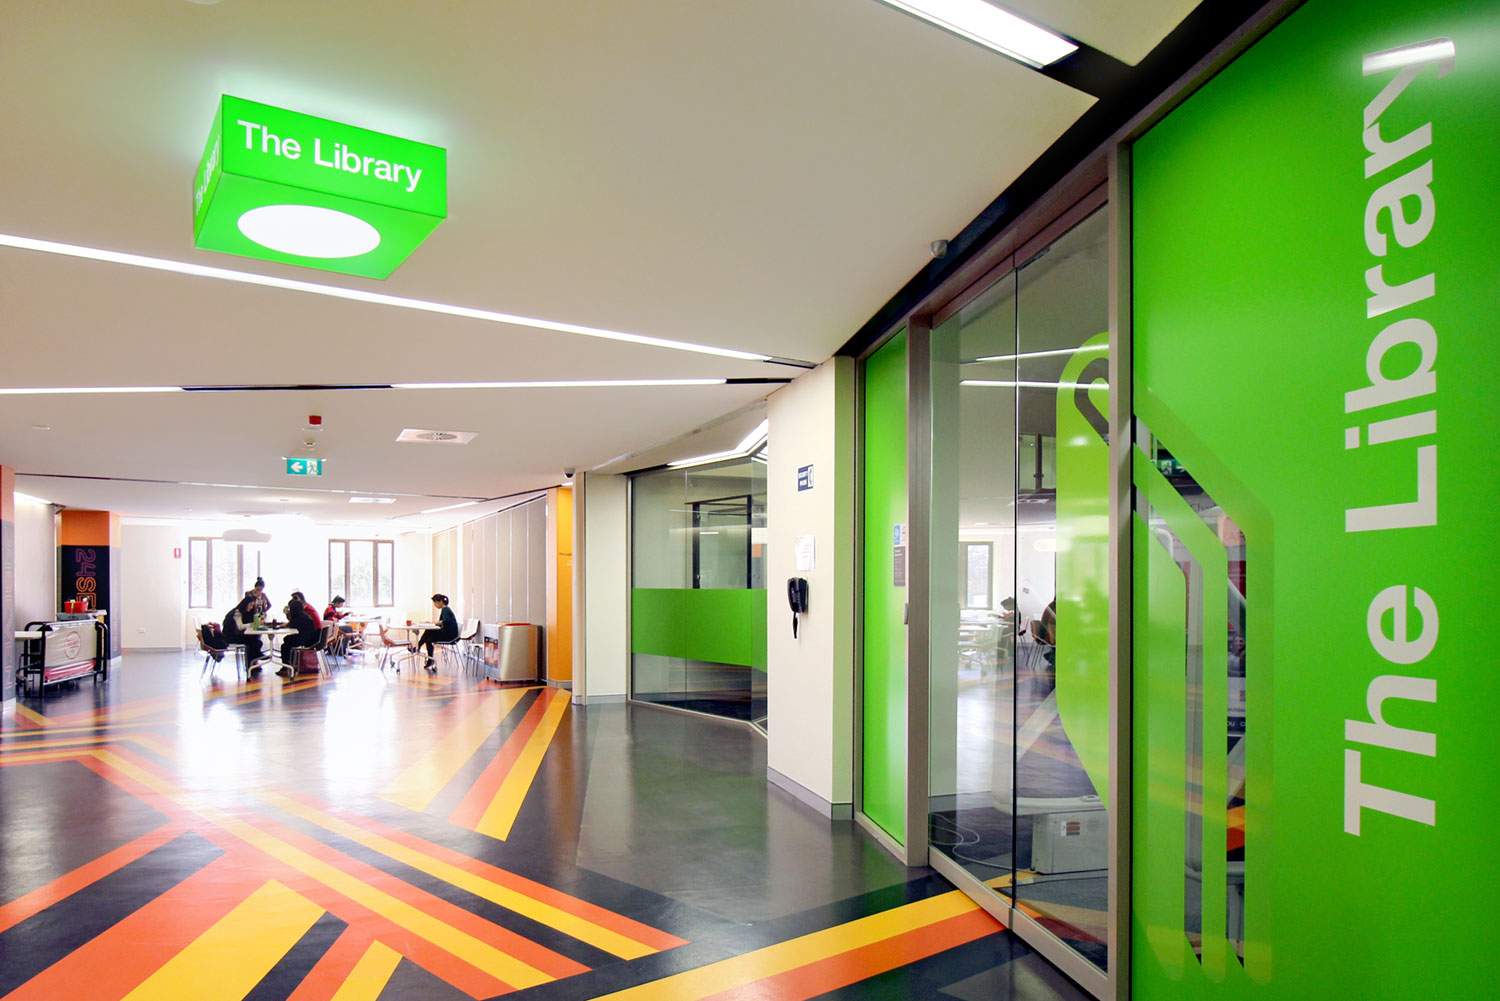 CSU, Wagga: We designed and made bespoke light fittings mounted on the ceiling to identify key areas in a crowded space.